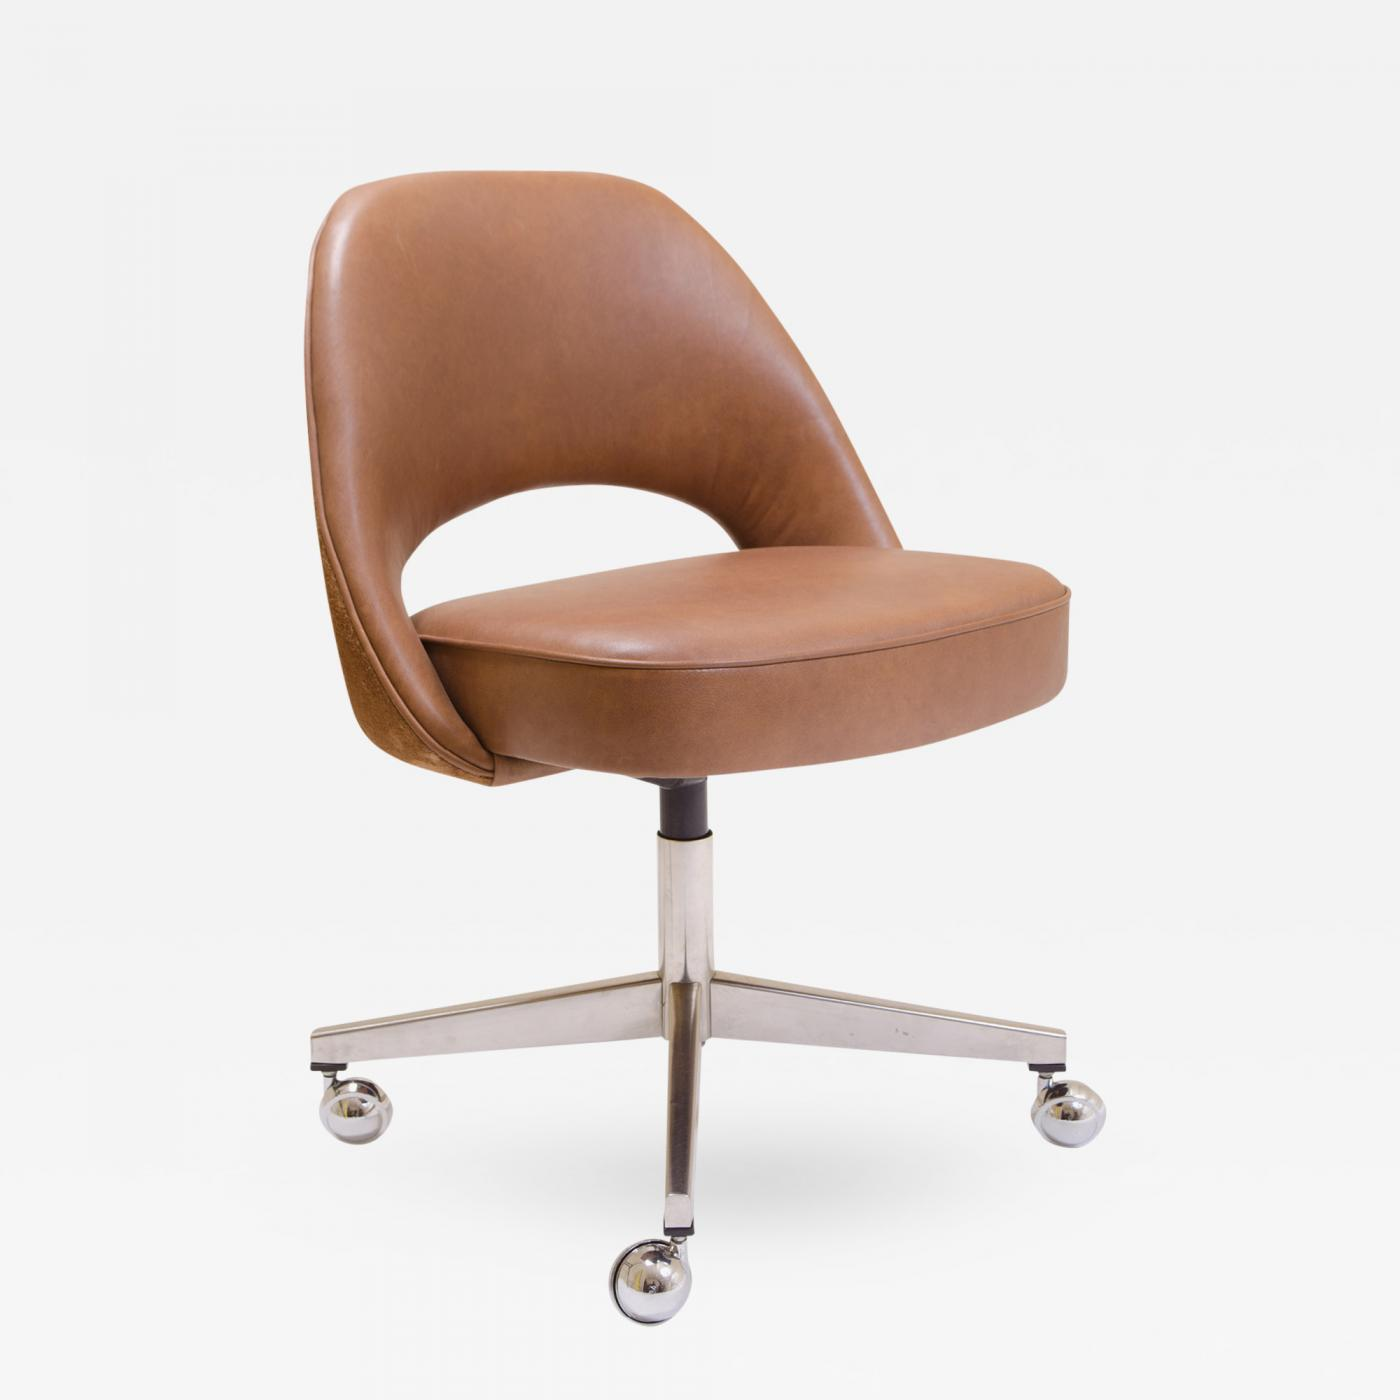 Saddle Office Chair Eero Saarinen Saarinen For Knoll Executive Armless Chair In Saddle Leather Suede Swivel Base